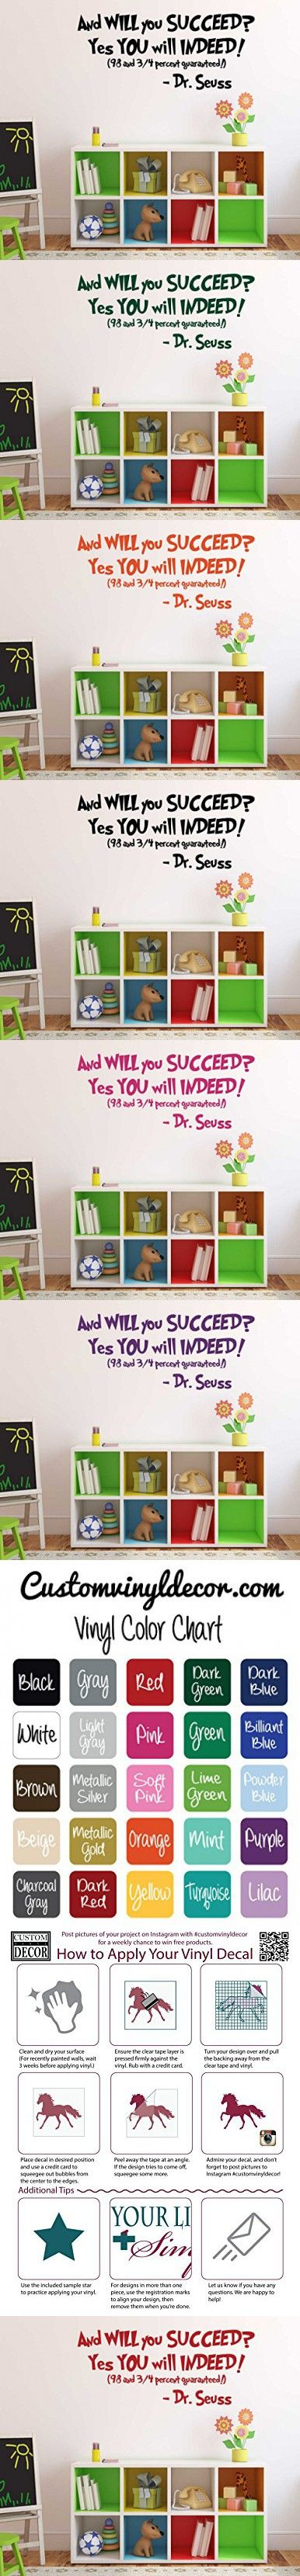 "Dr Seuss Quotes Wall Decal Vinyl Decor ""And Will You Succeed? Yes You will Indeed!"" Saying for Kids Playroom, Bedroom, Baby Nursery, School Classroom, Library, Preschool, Day Care"